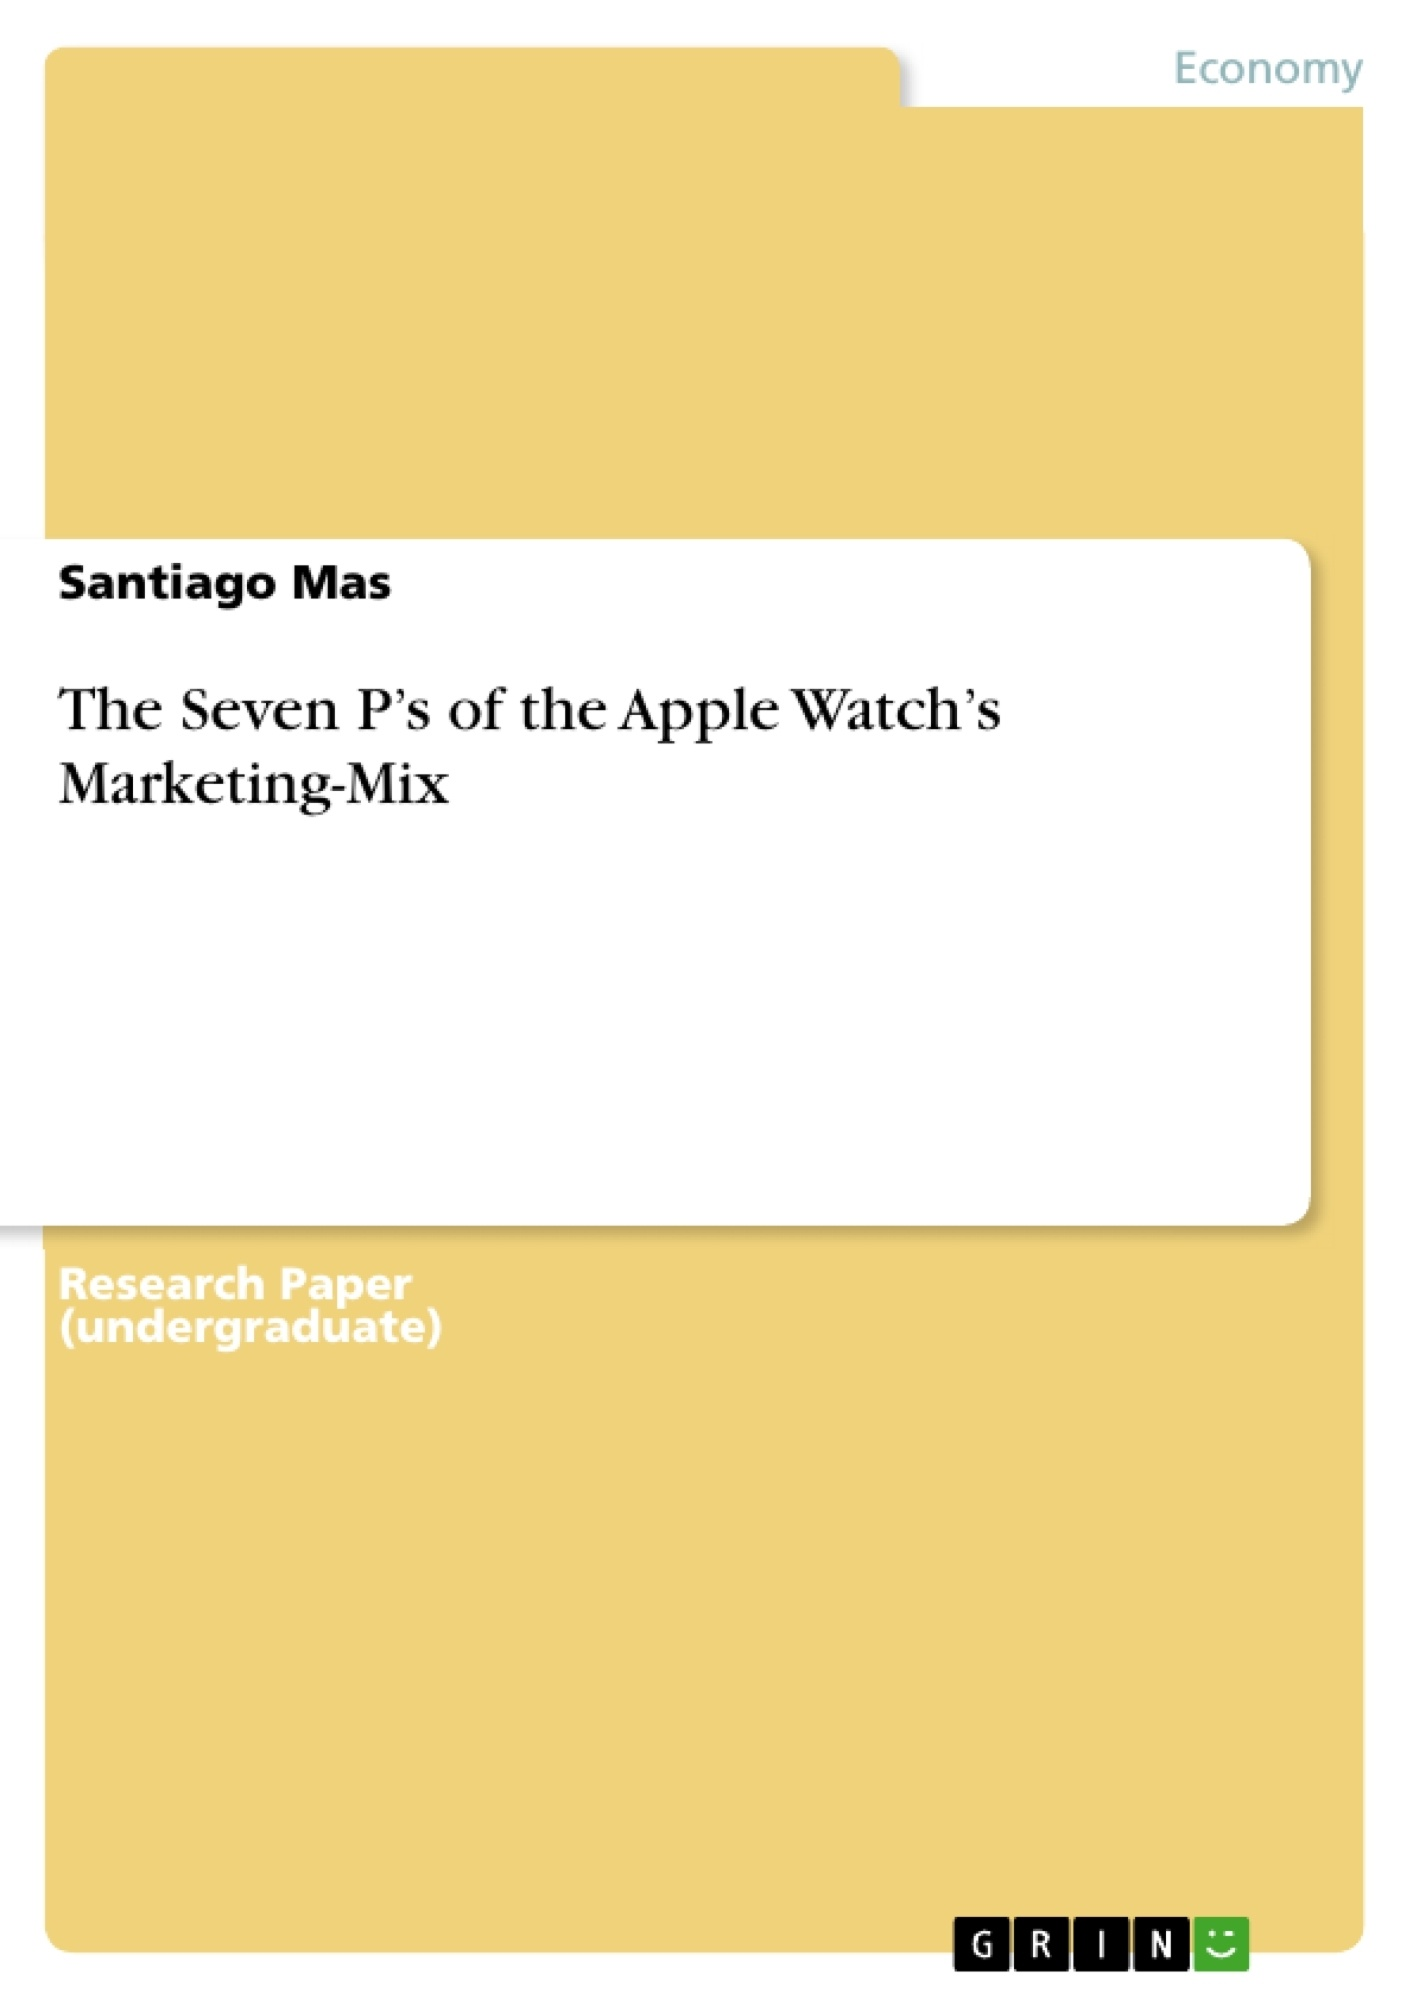 Title: The Seven P's of the Apple Watch's Marketing-Mix